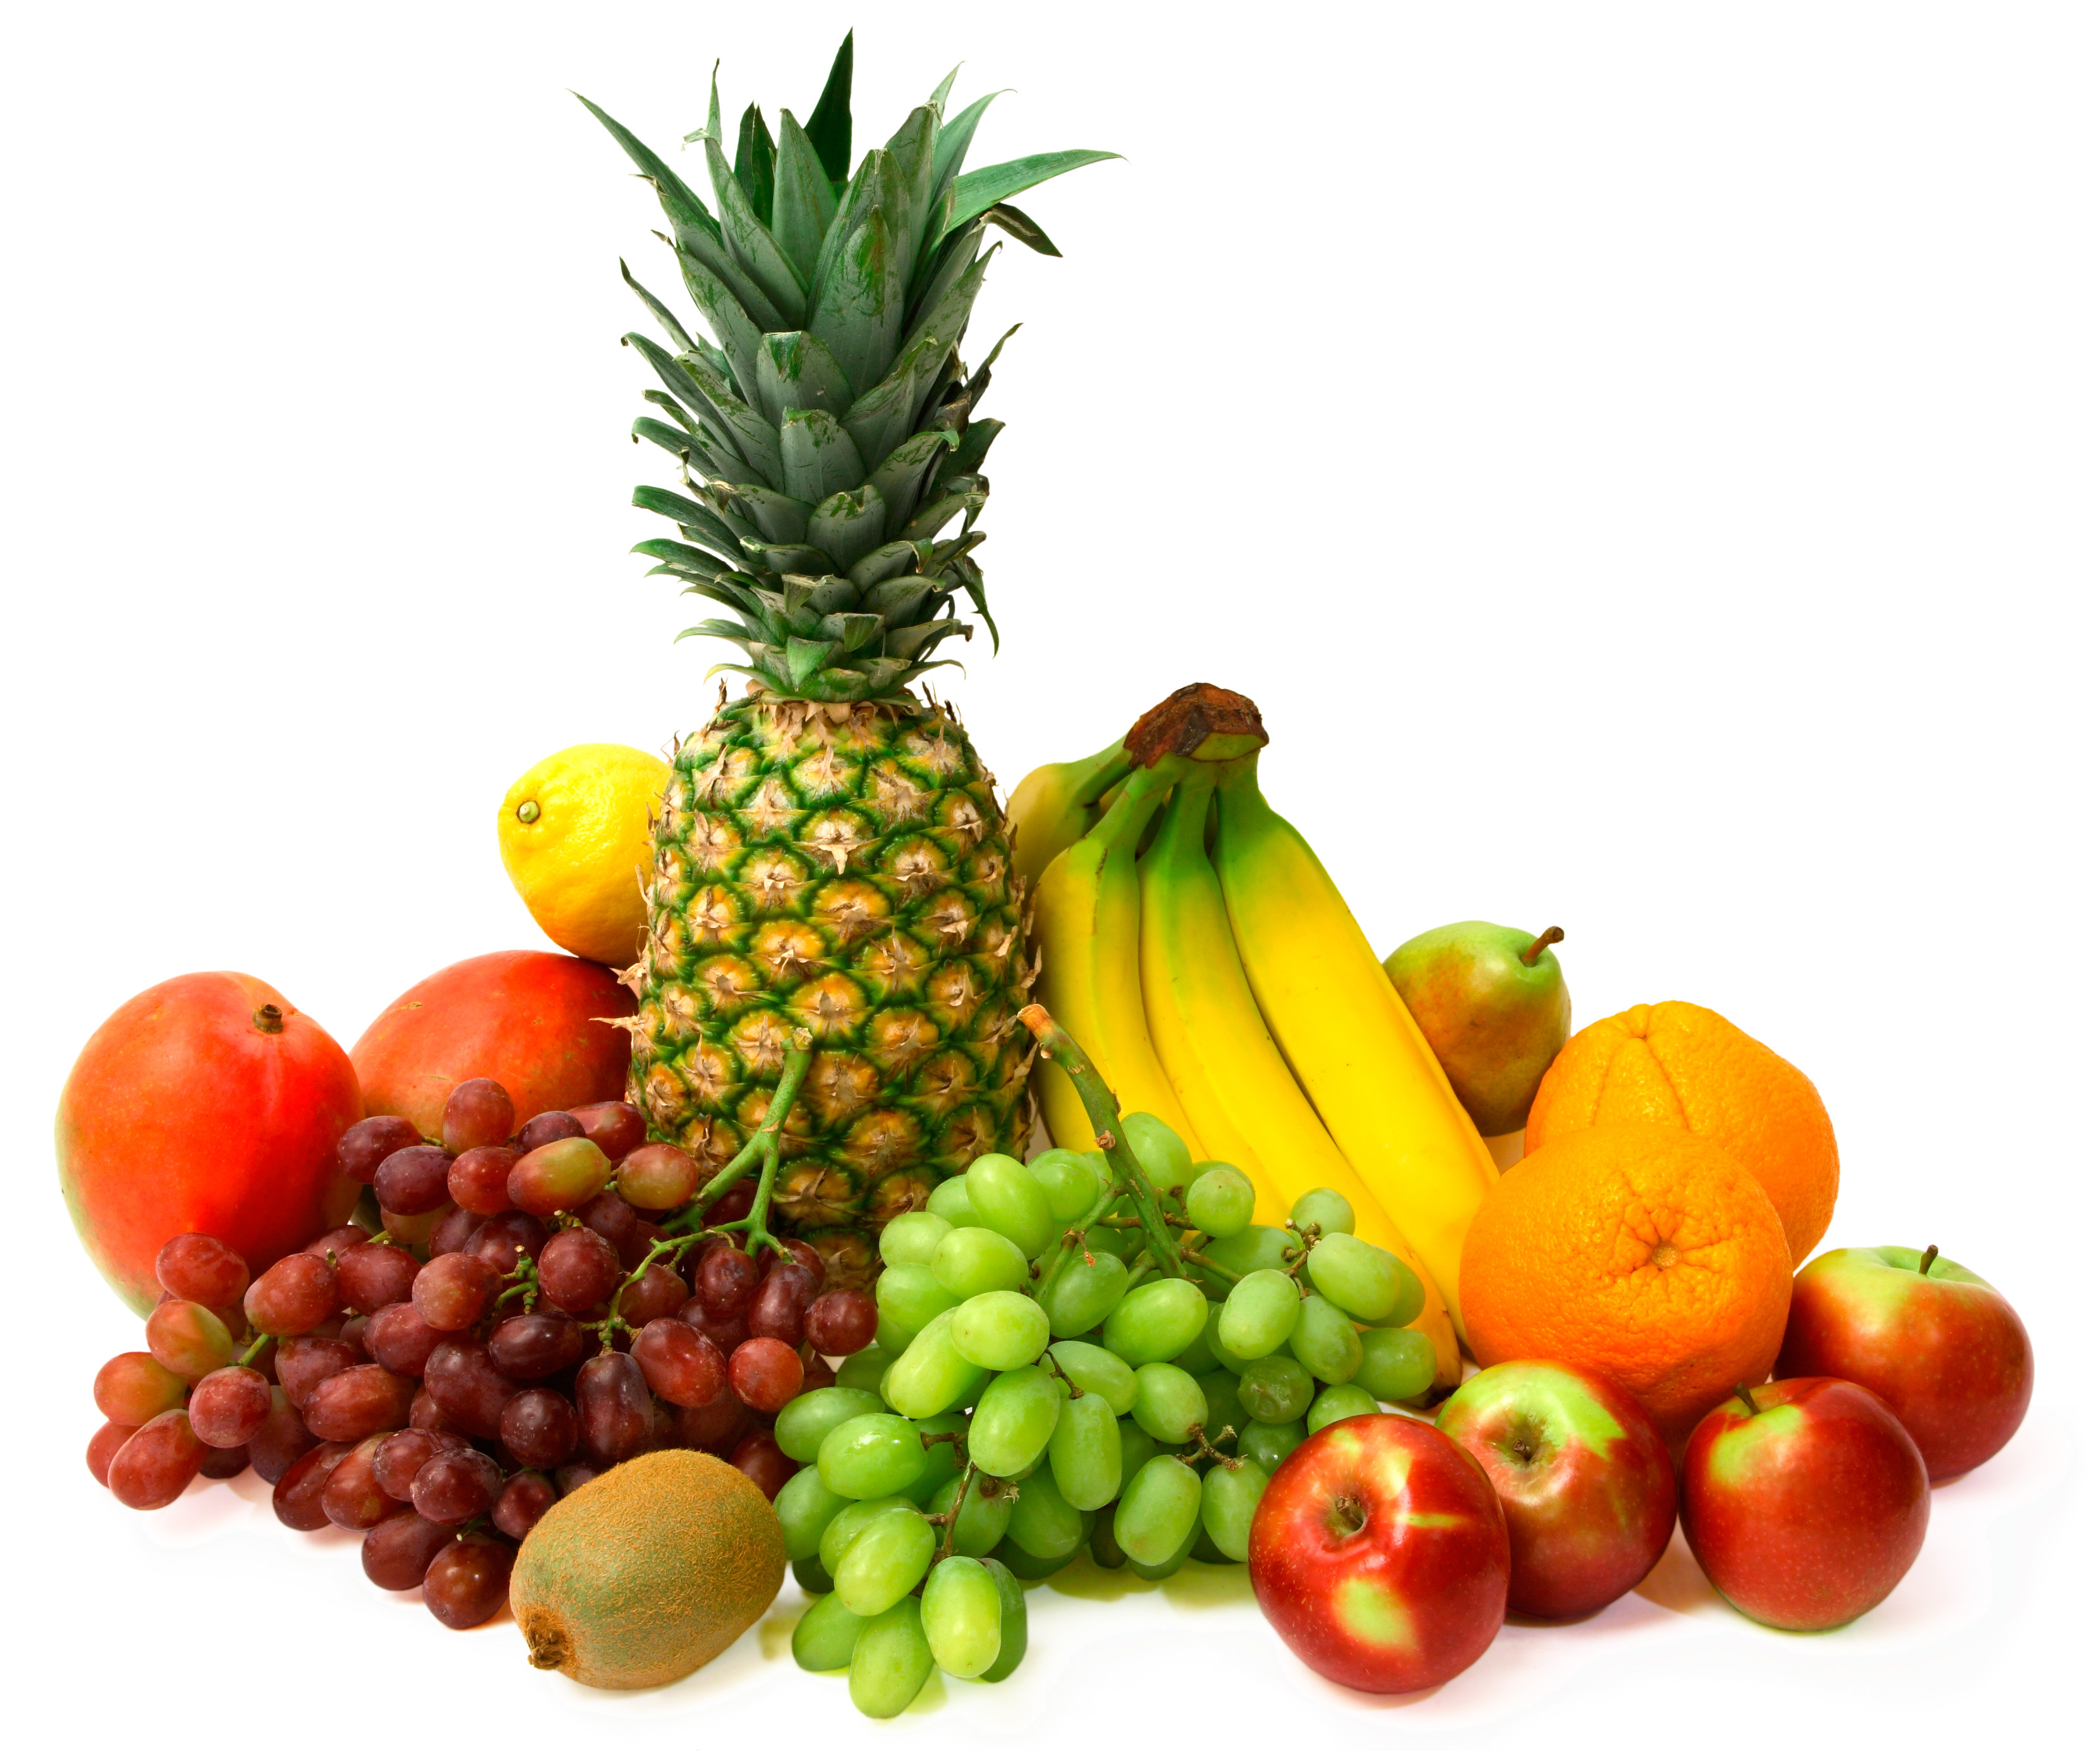 Fruit wallpapers Food HQ Fruit pictures 4K Wallpapers 2019 3323x2770